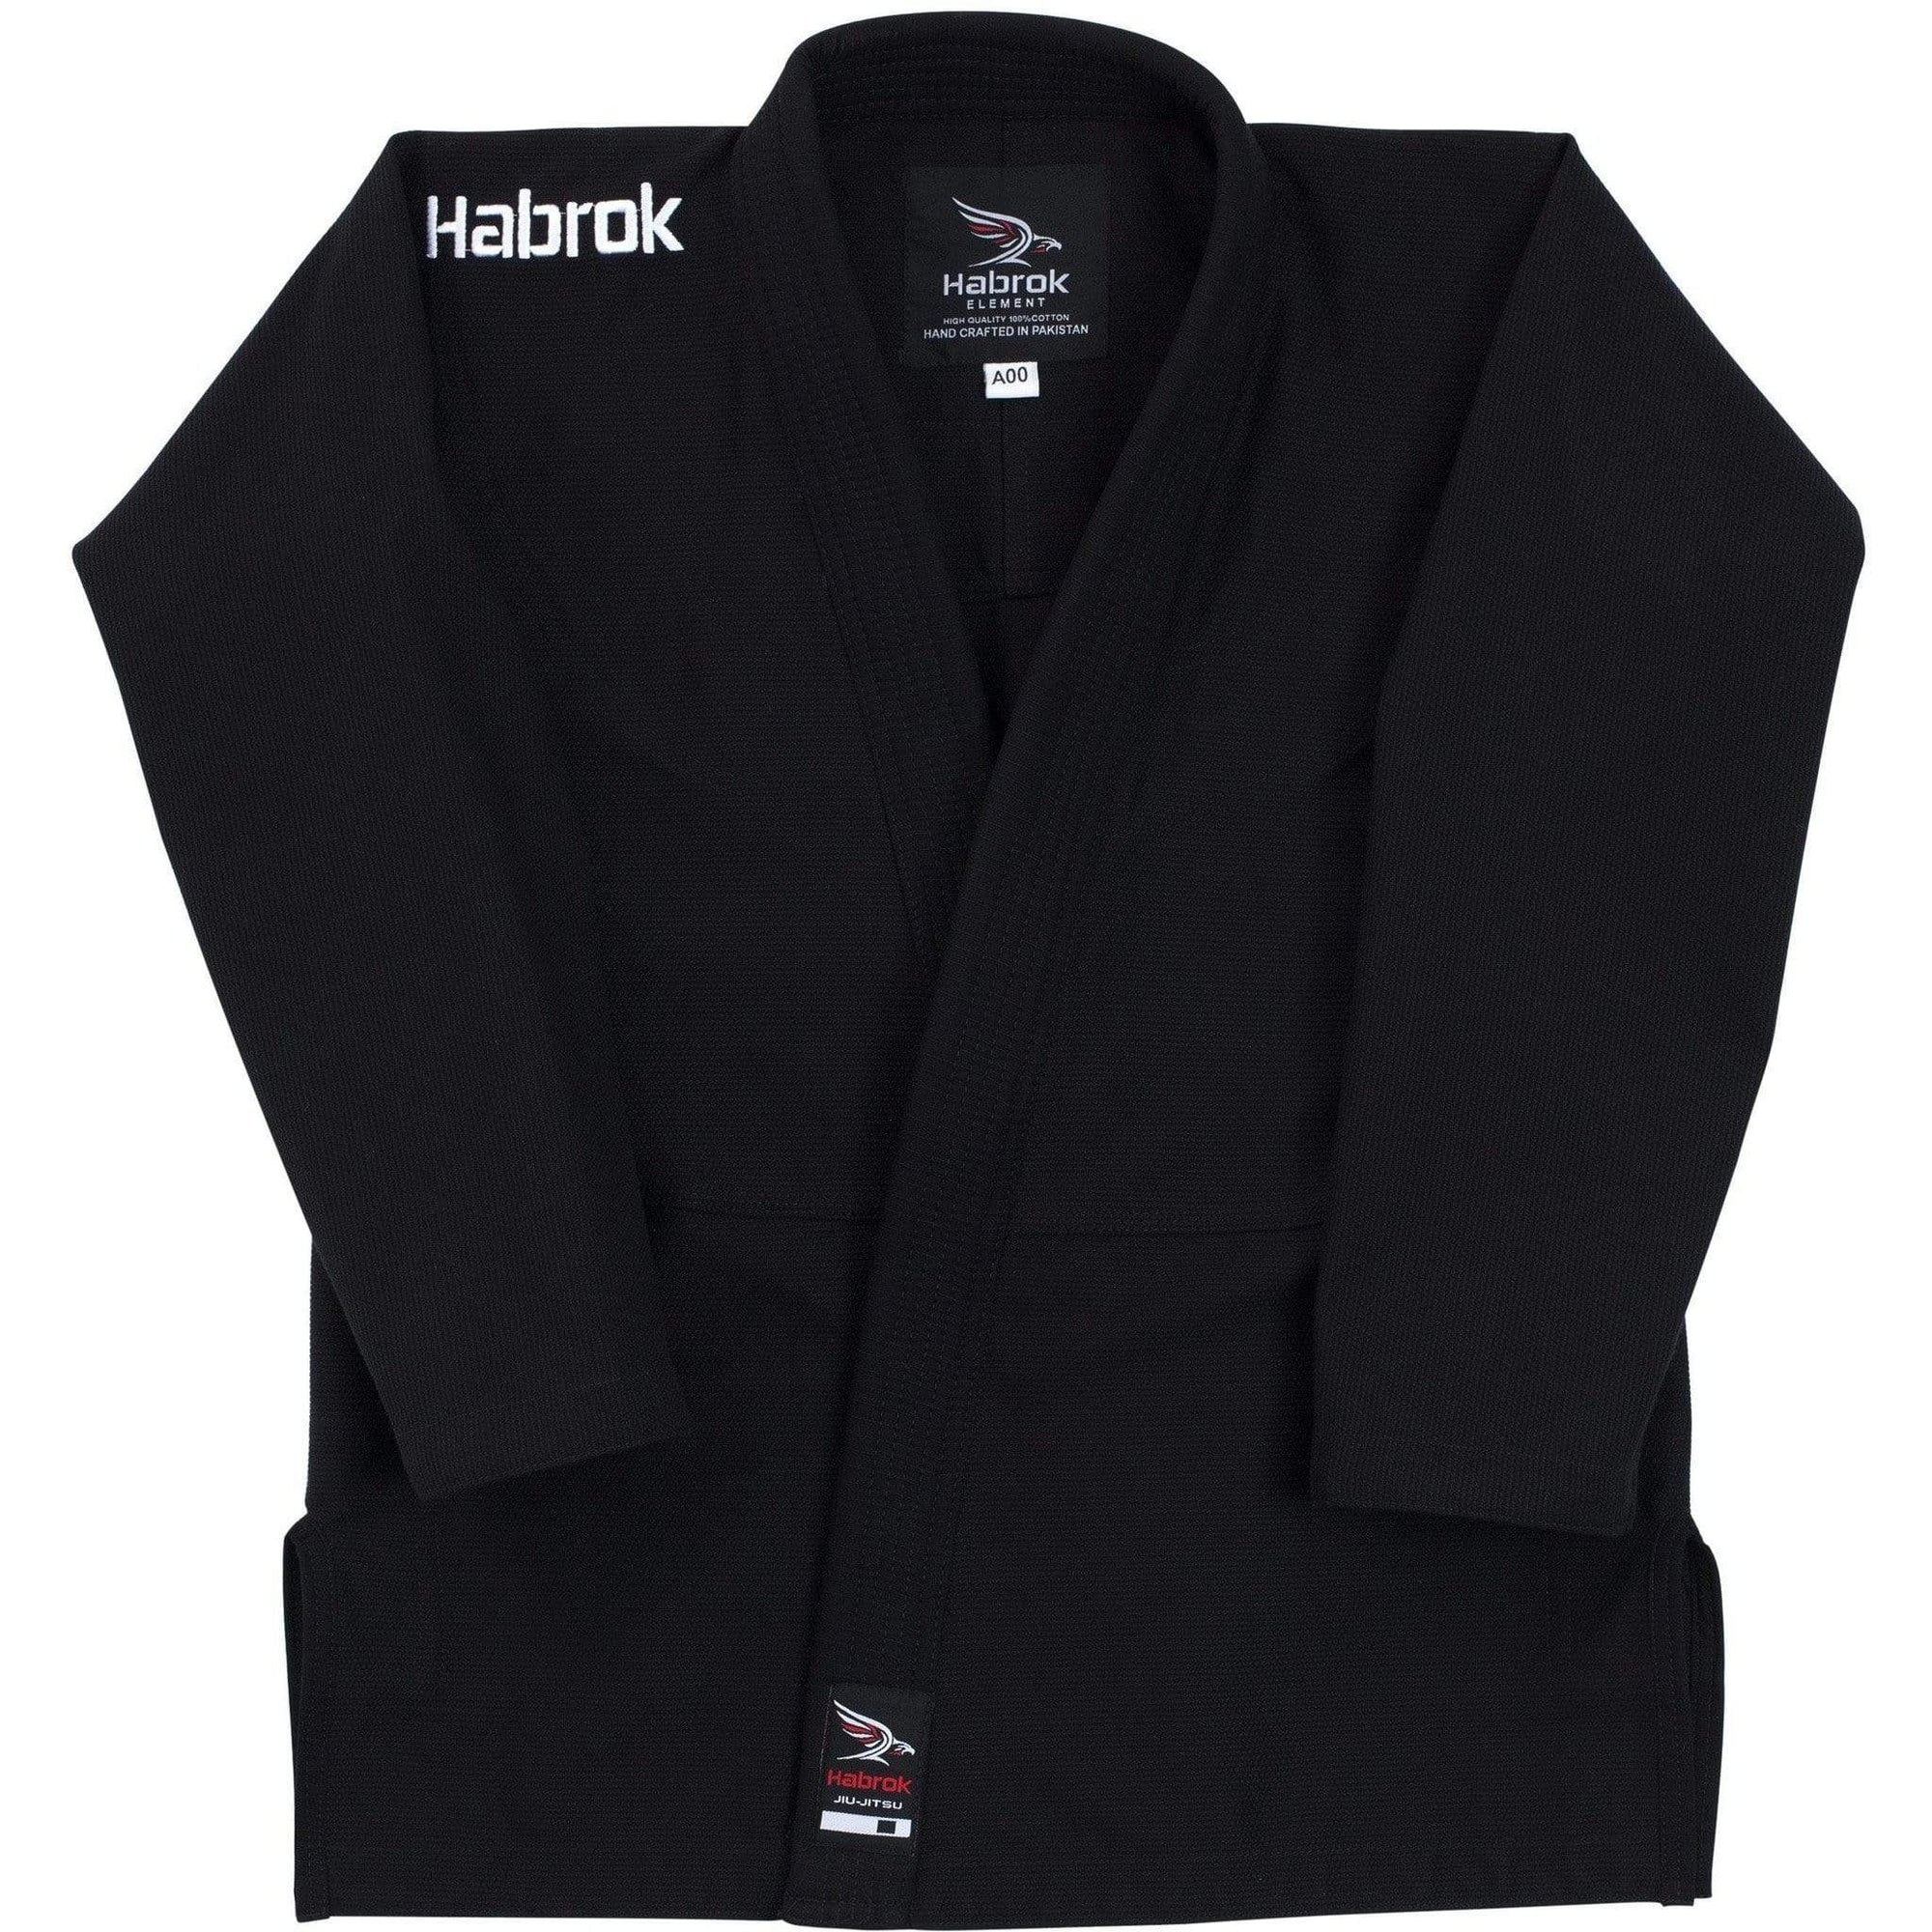 Habrok Jiu Jitsu Gi A00 / BLACK Element | Ultra Light Weight Gi